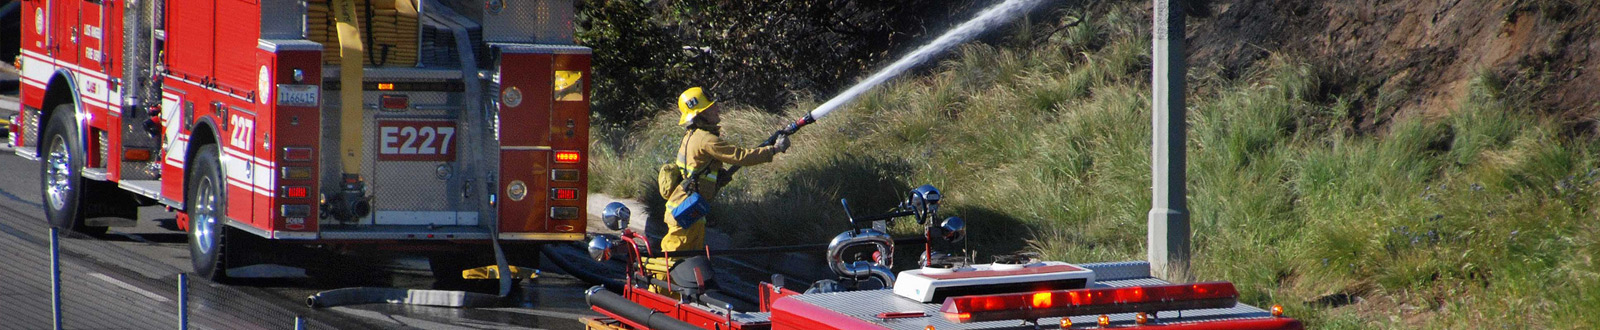 Firefighter extinguishes grass fire